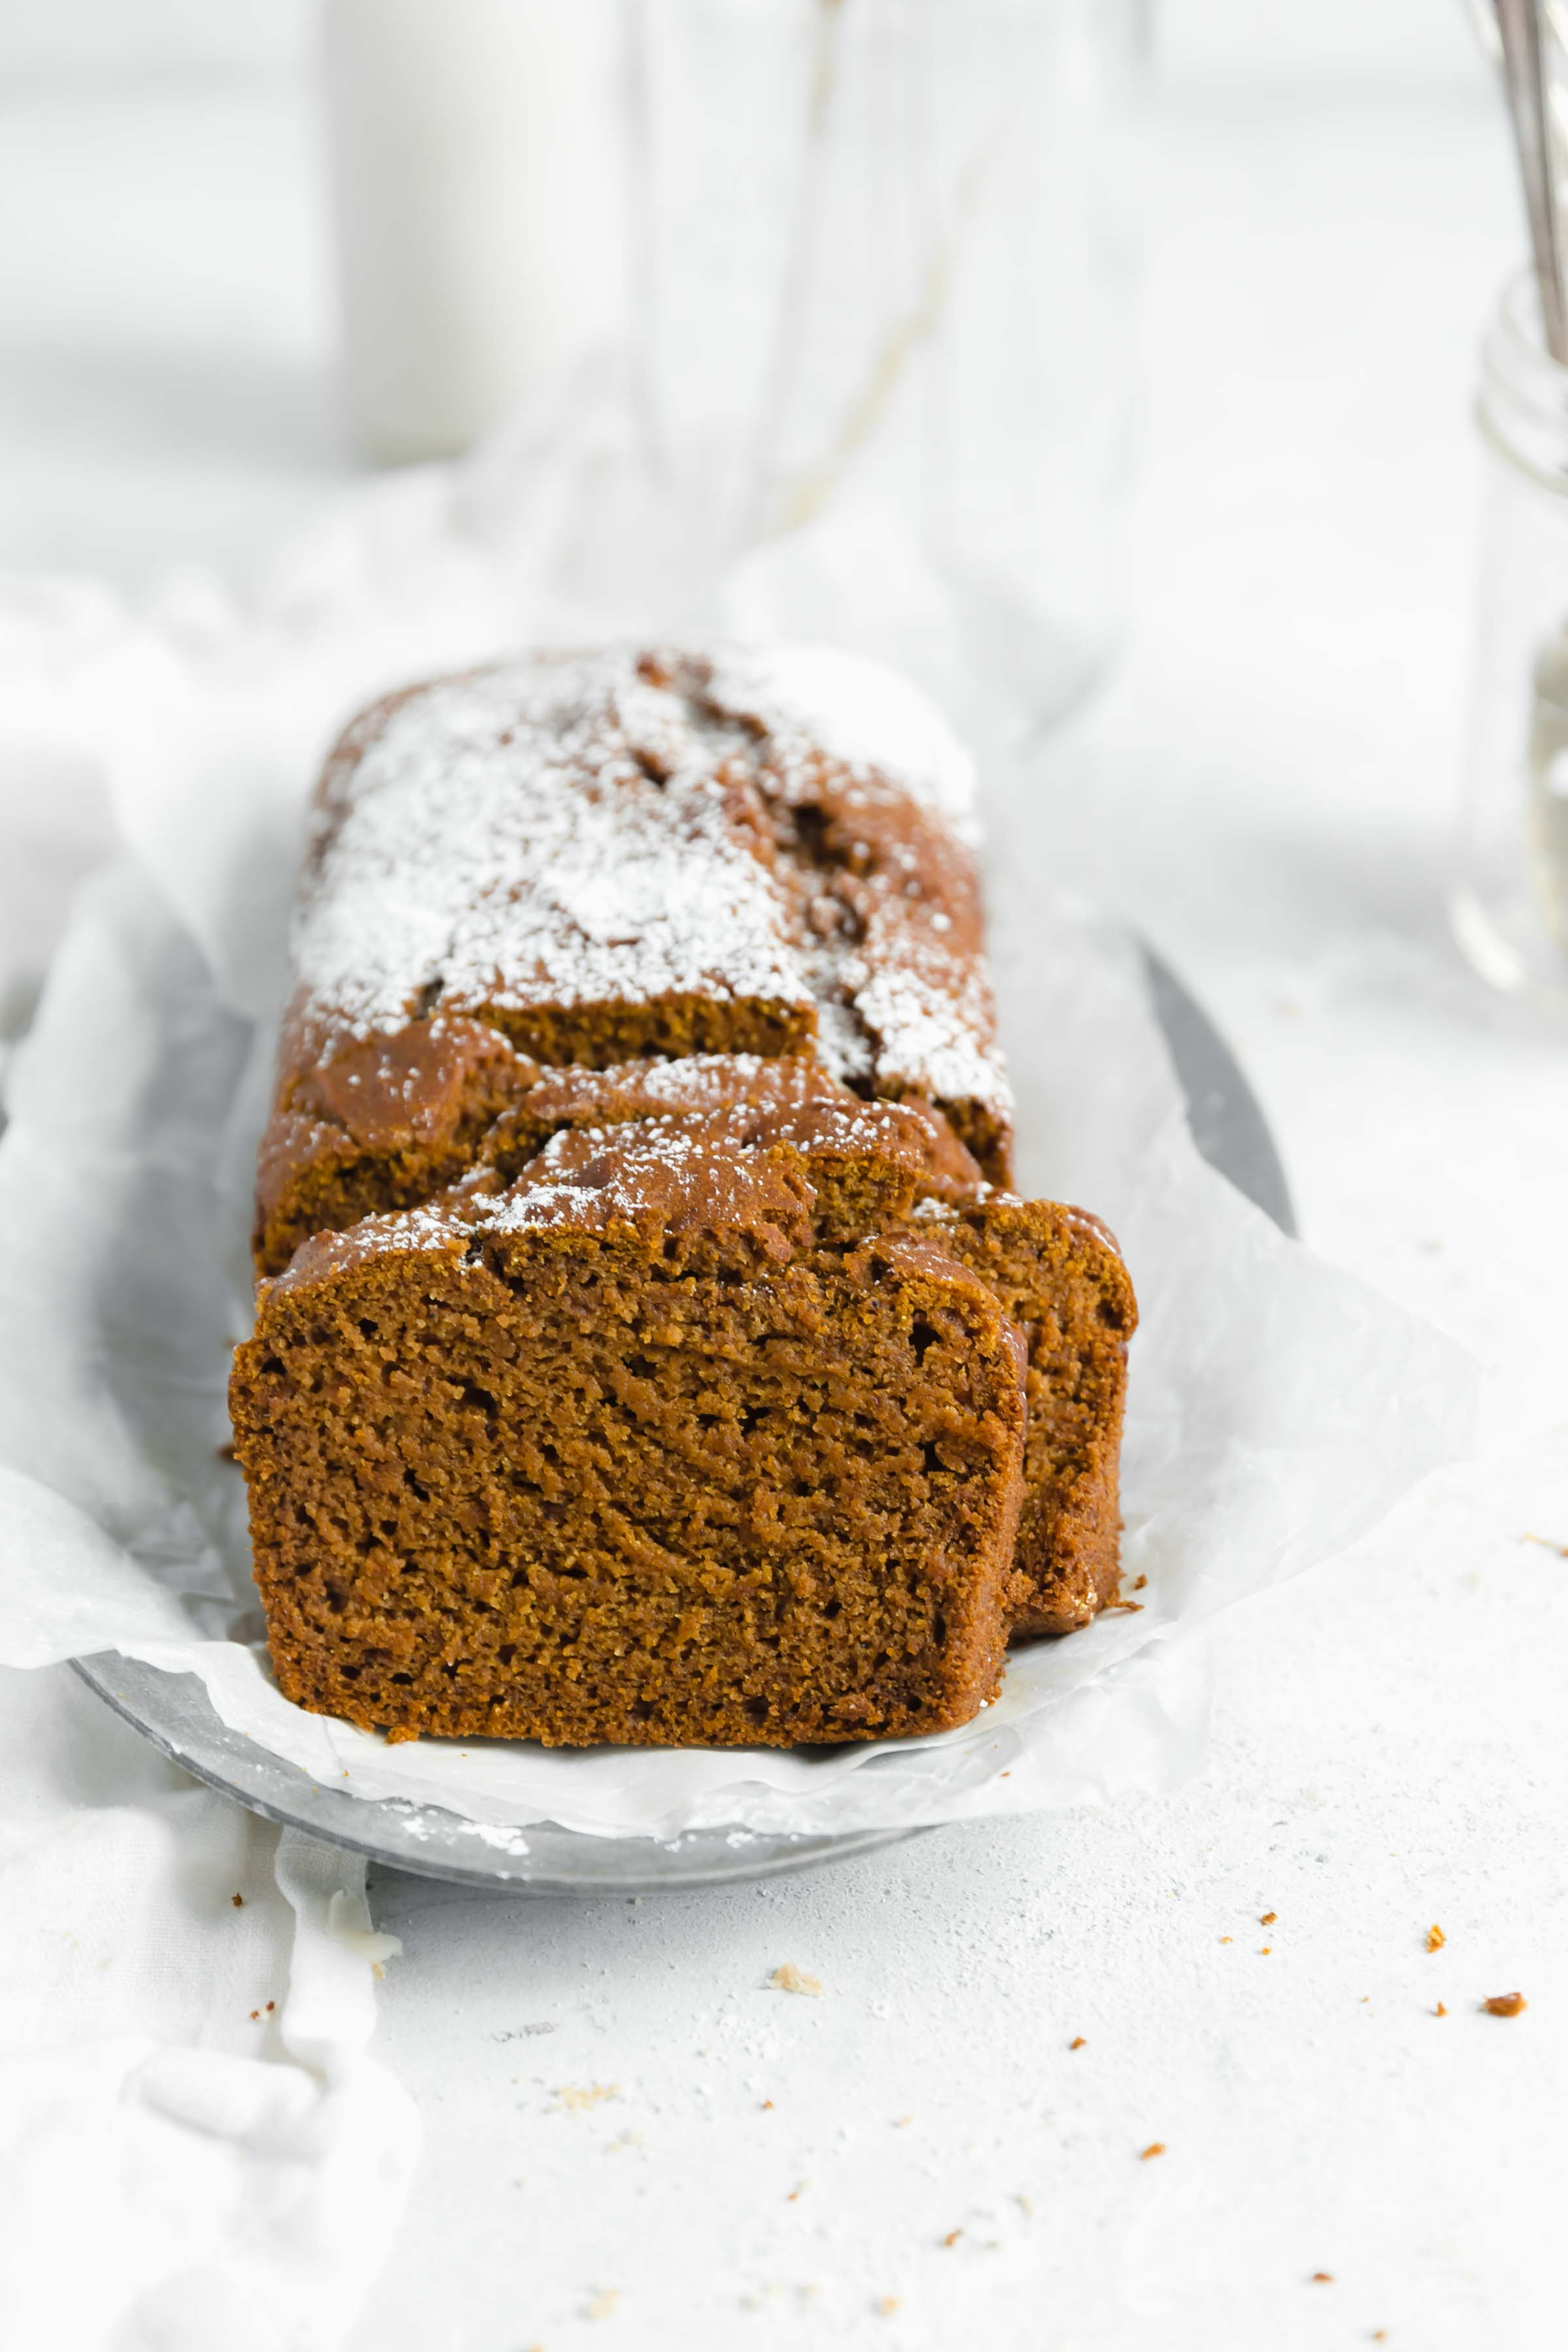 healthy gluten free pumpkin bread made with a whole cup of pumpkin and sweetened with maple syrup!